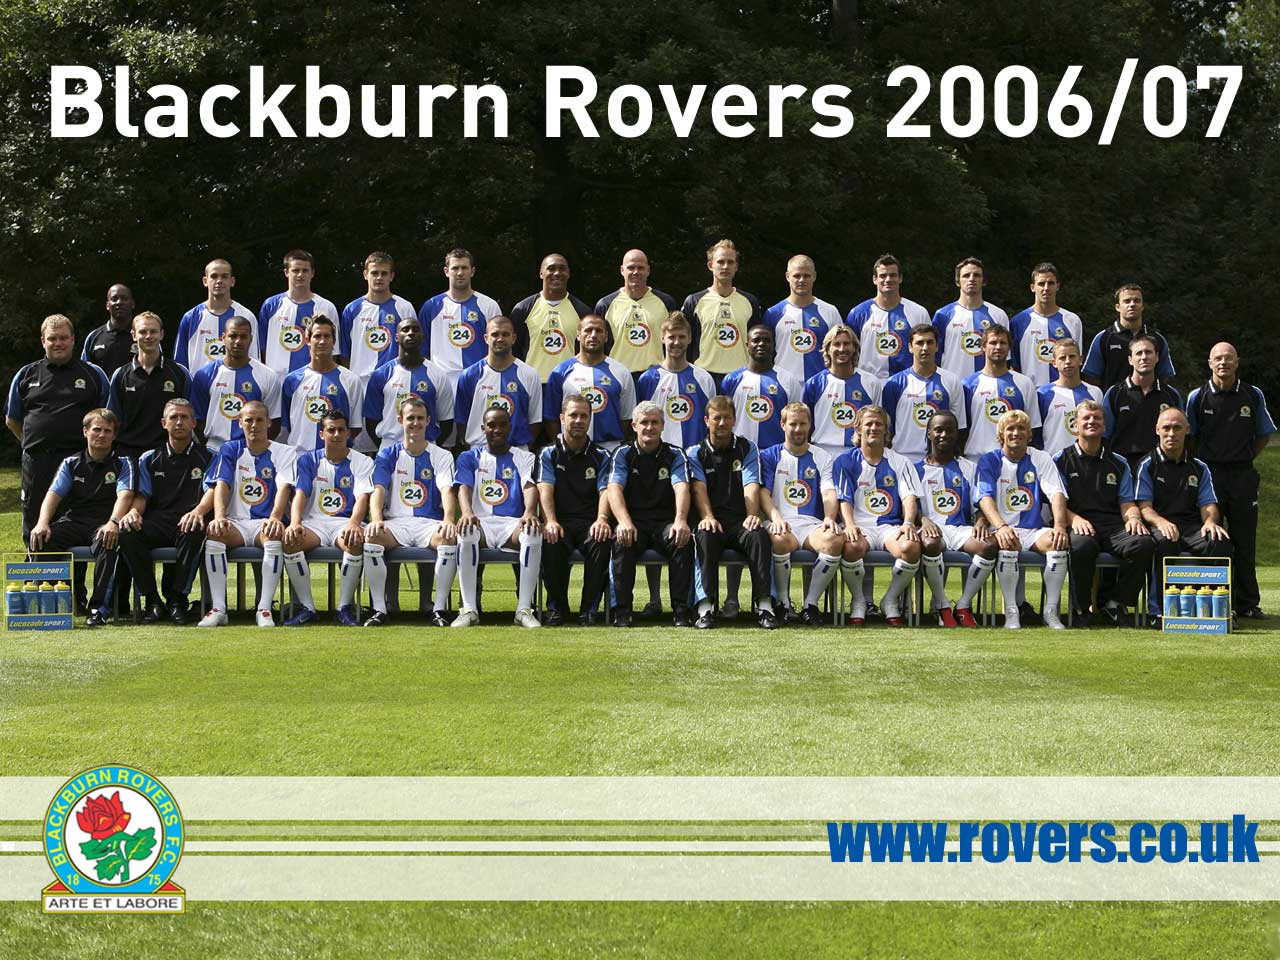 Blackburn Rovers F.C. Matches